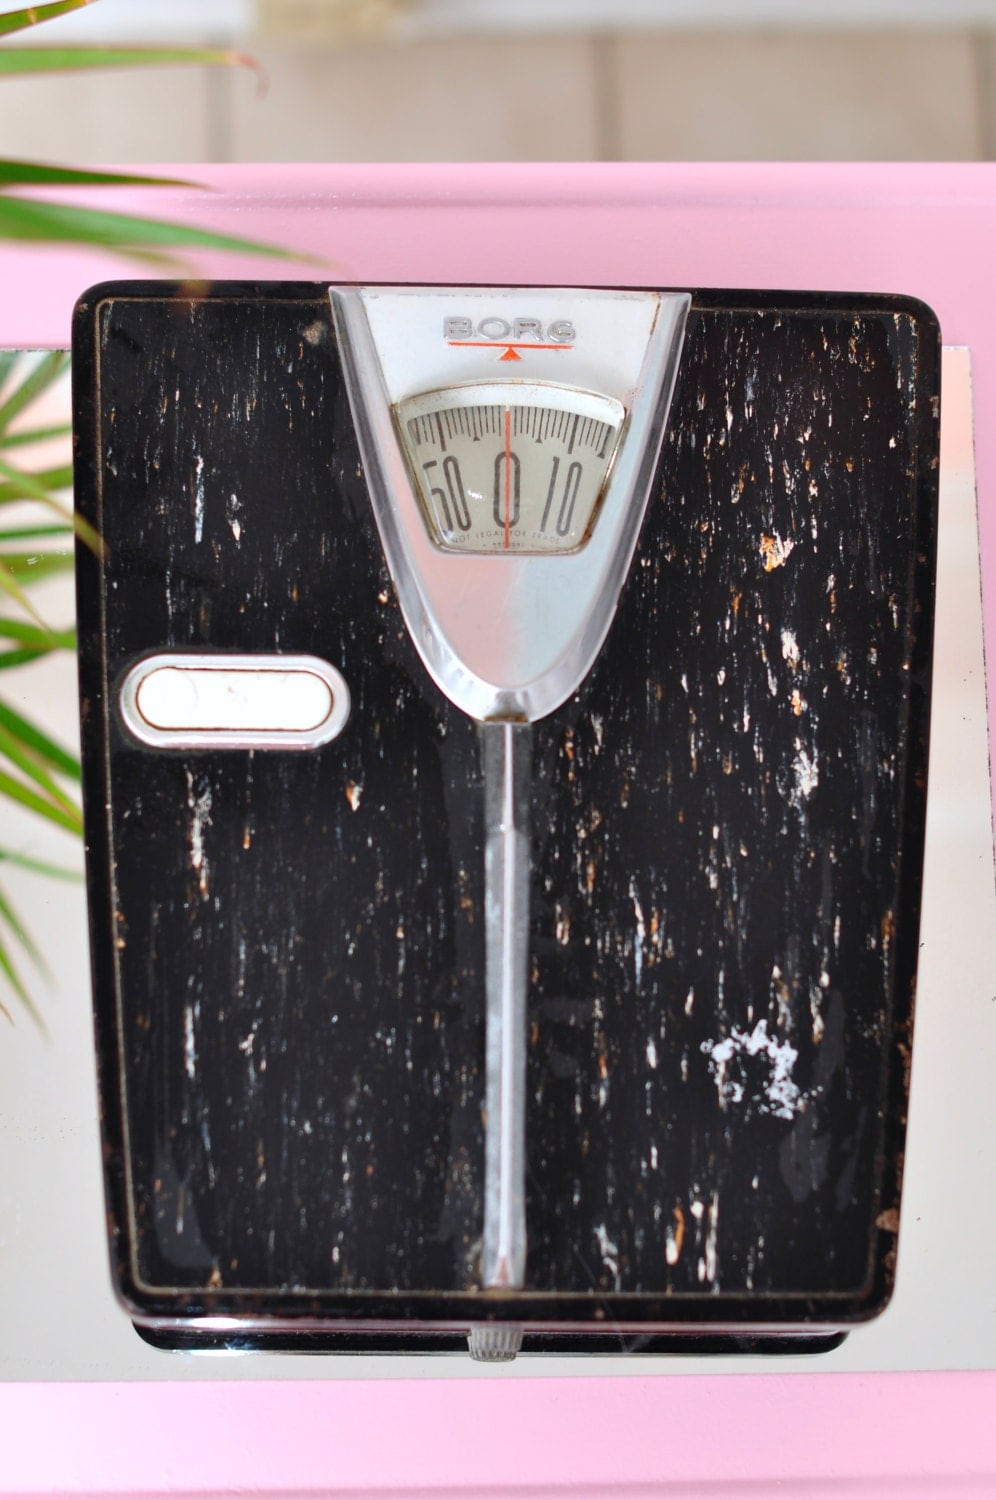 Vintage borg bathroom scale w dial lock and handle retro for Borg bathroom scale